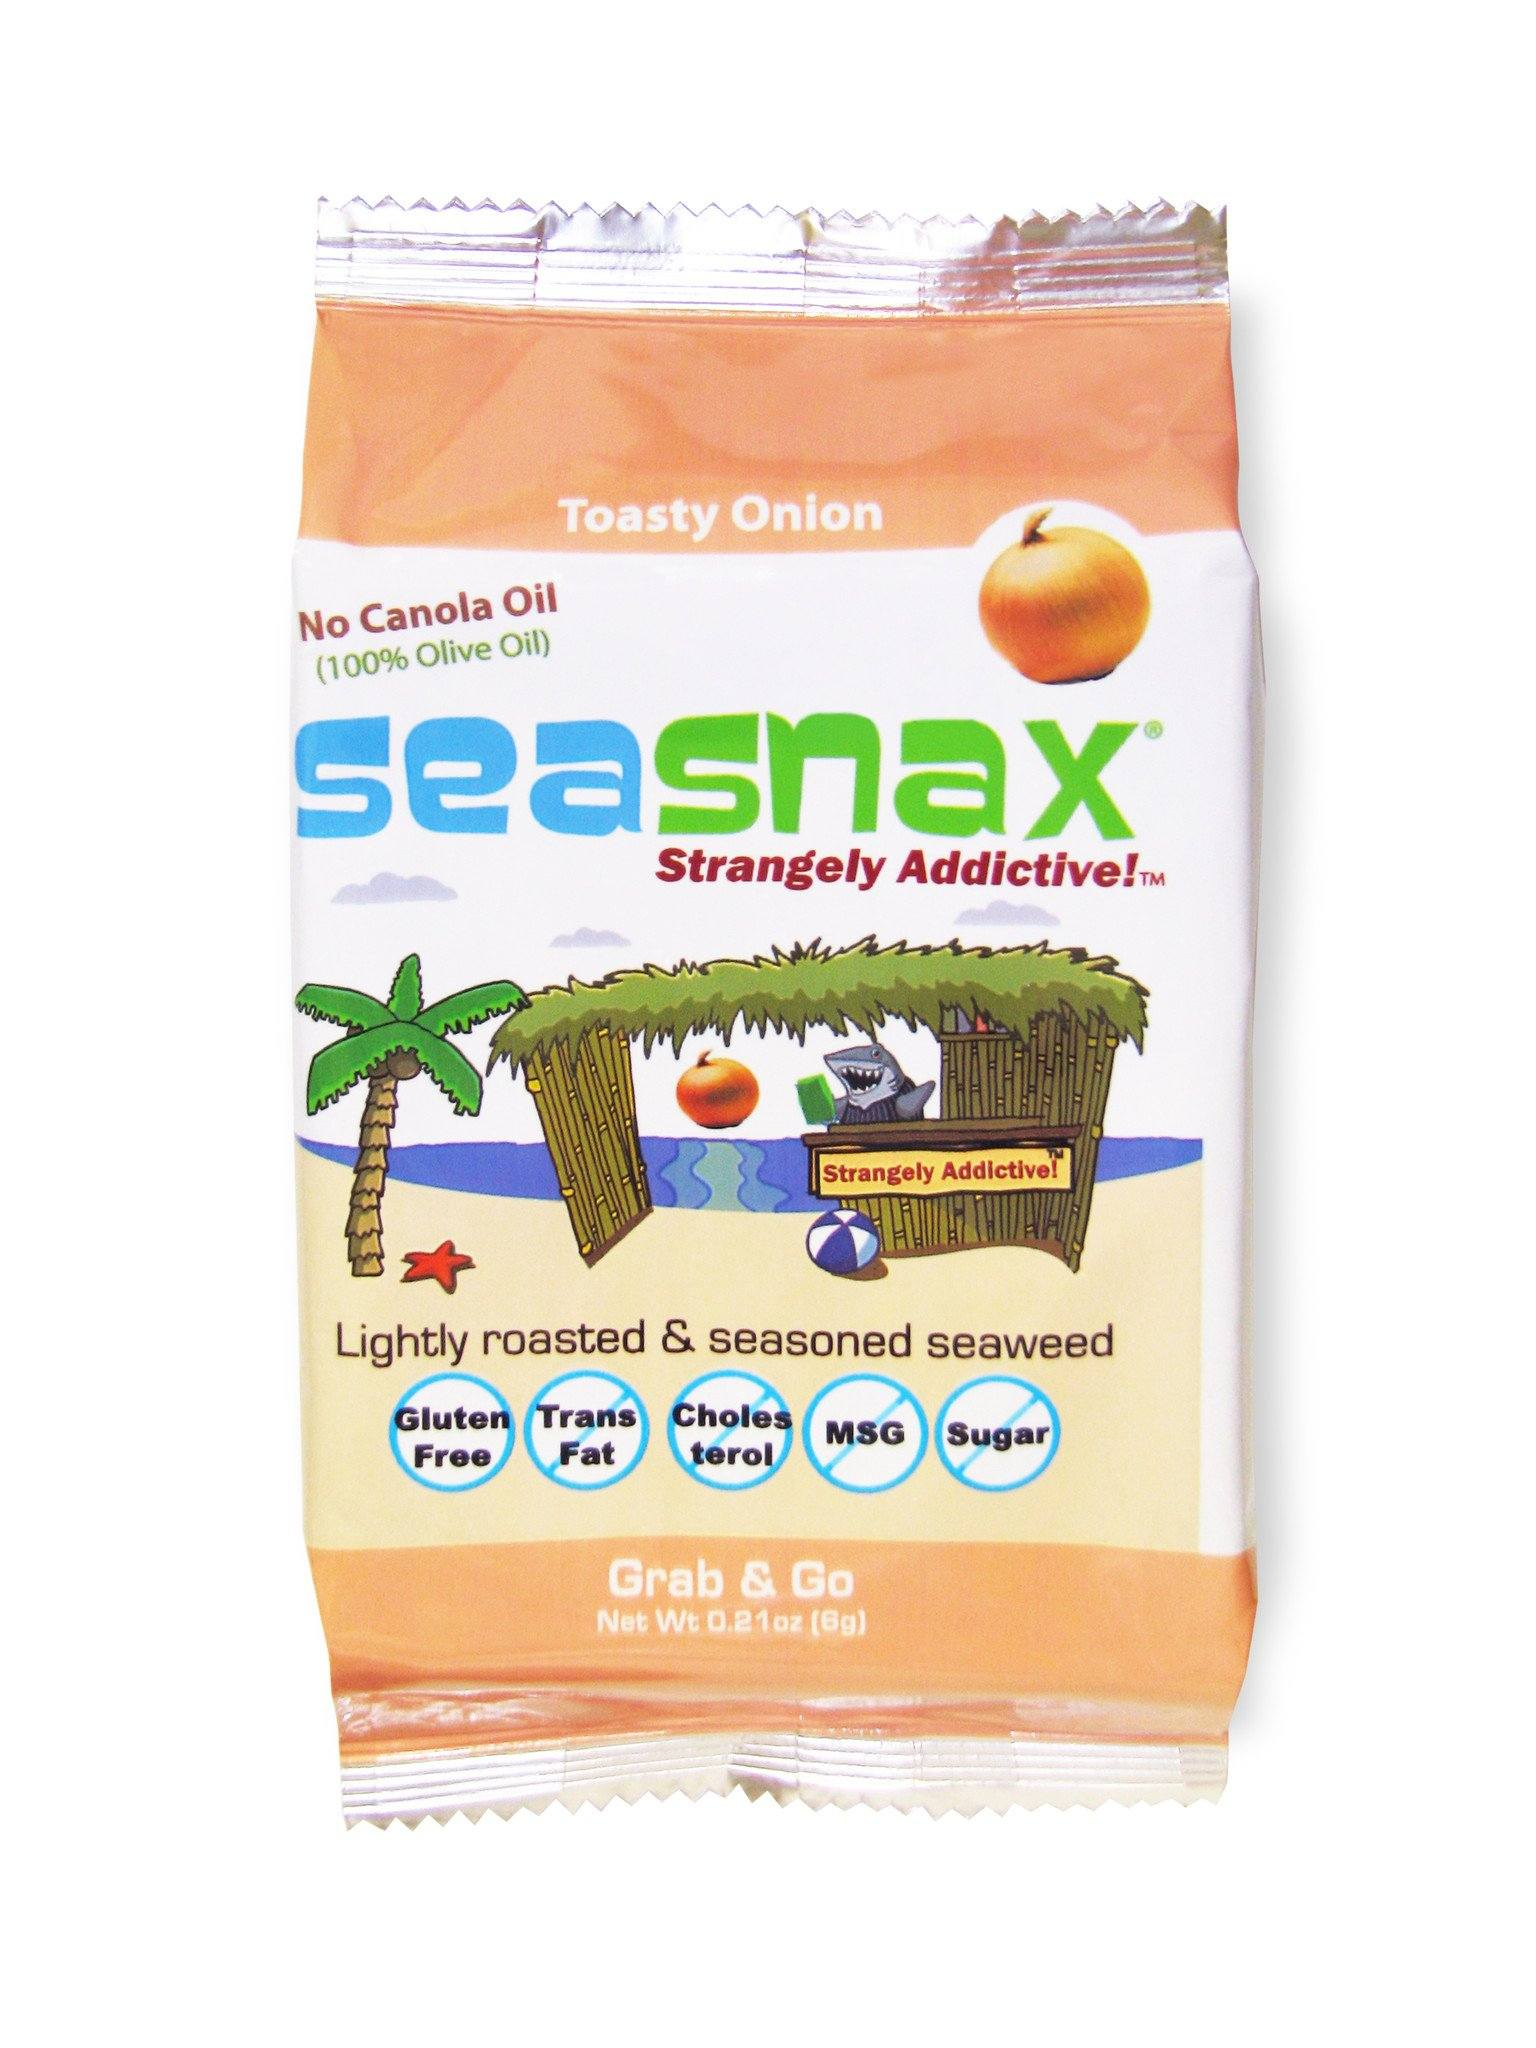 Food & Drink - Seasnax - Seaweed Snack Toasty Onion, 5g